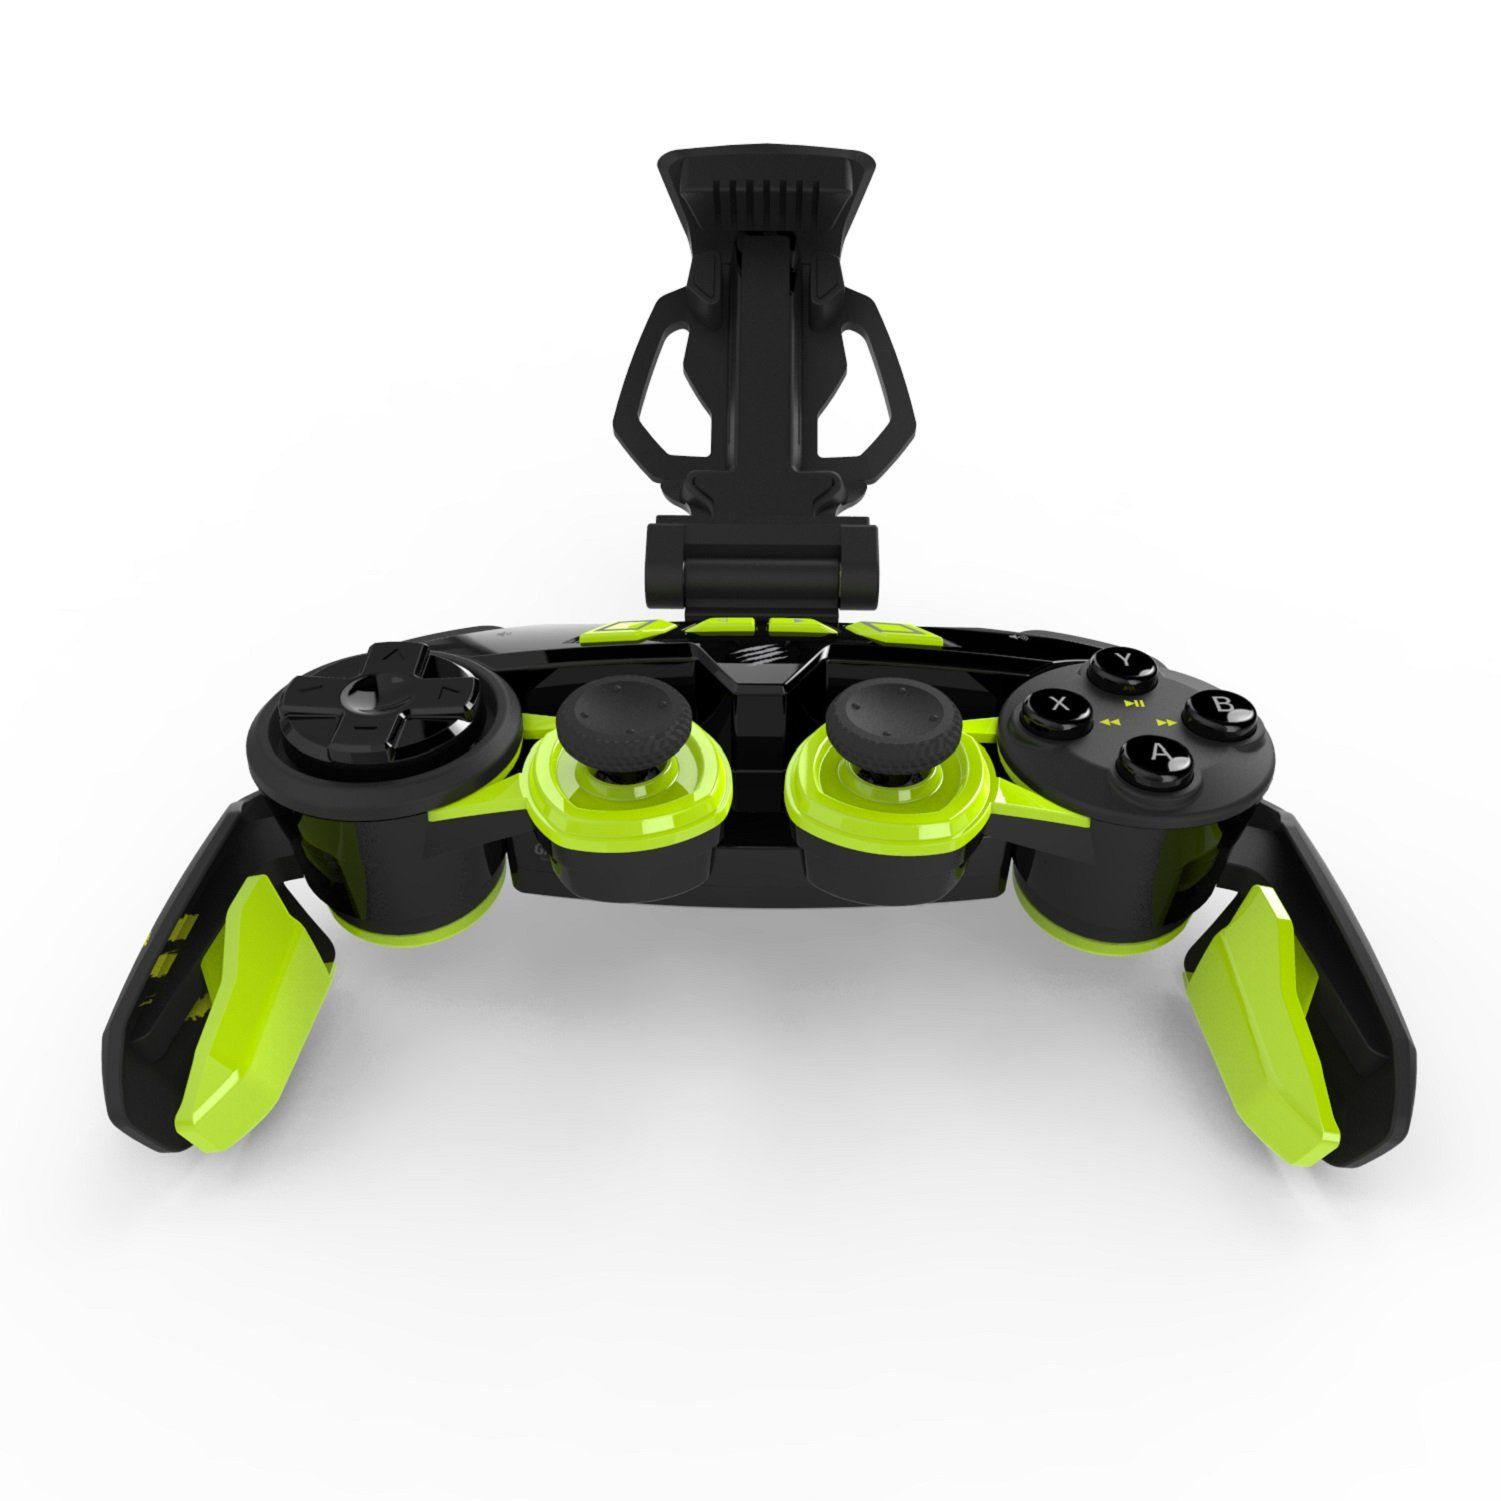 Mad Catz L Y N X 3 Mobile Wireless Controller With Bluetooth Technology For Android Smartphones And Tablets Bluetooth Technology Wireless Controller Smartphone